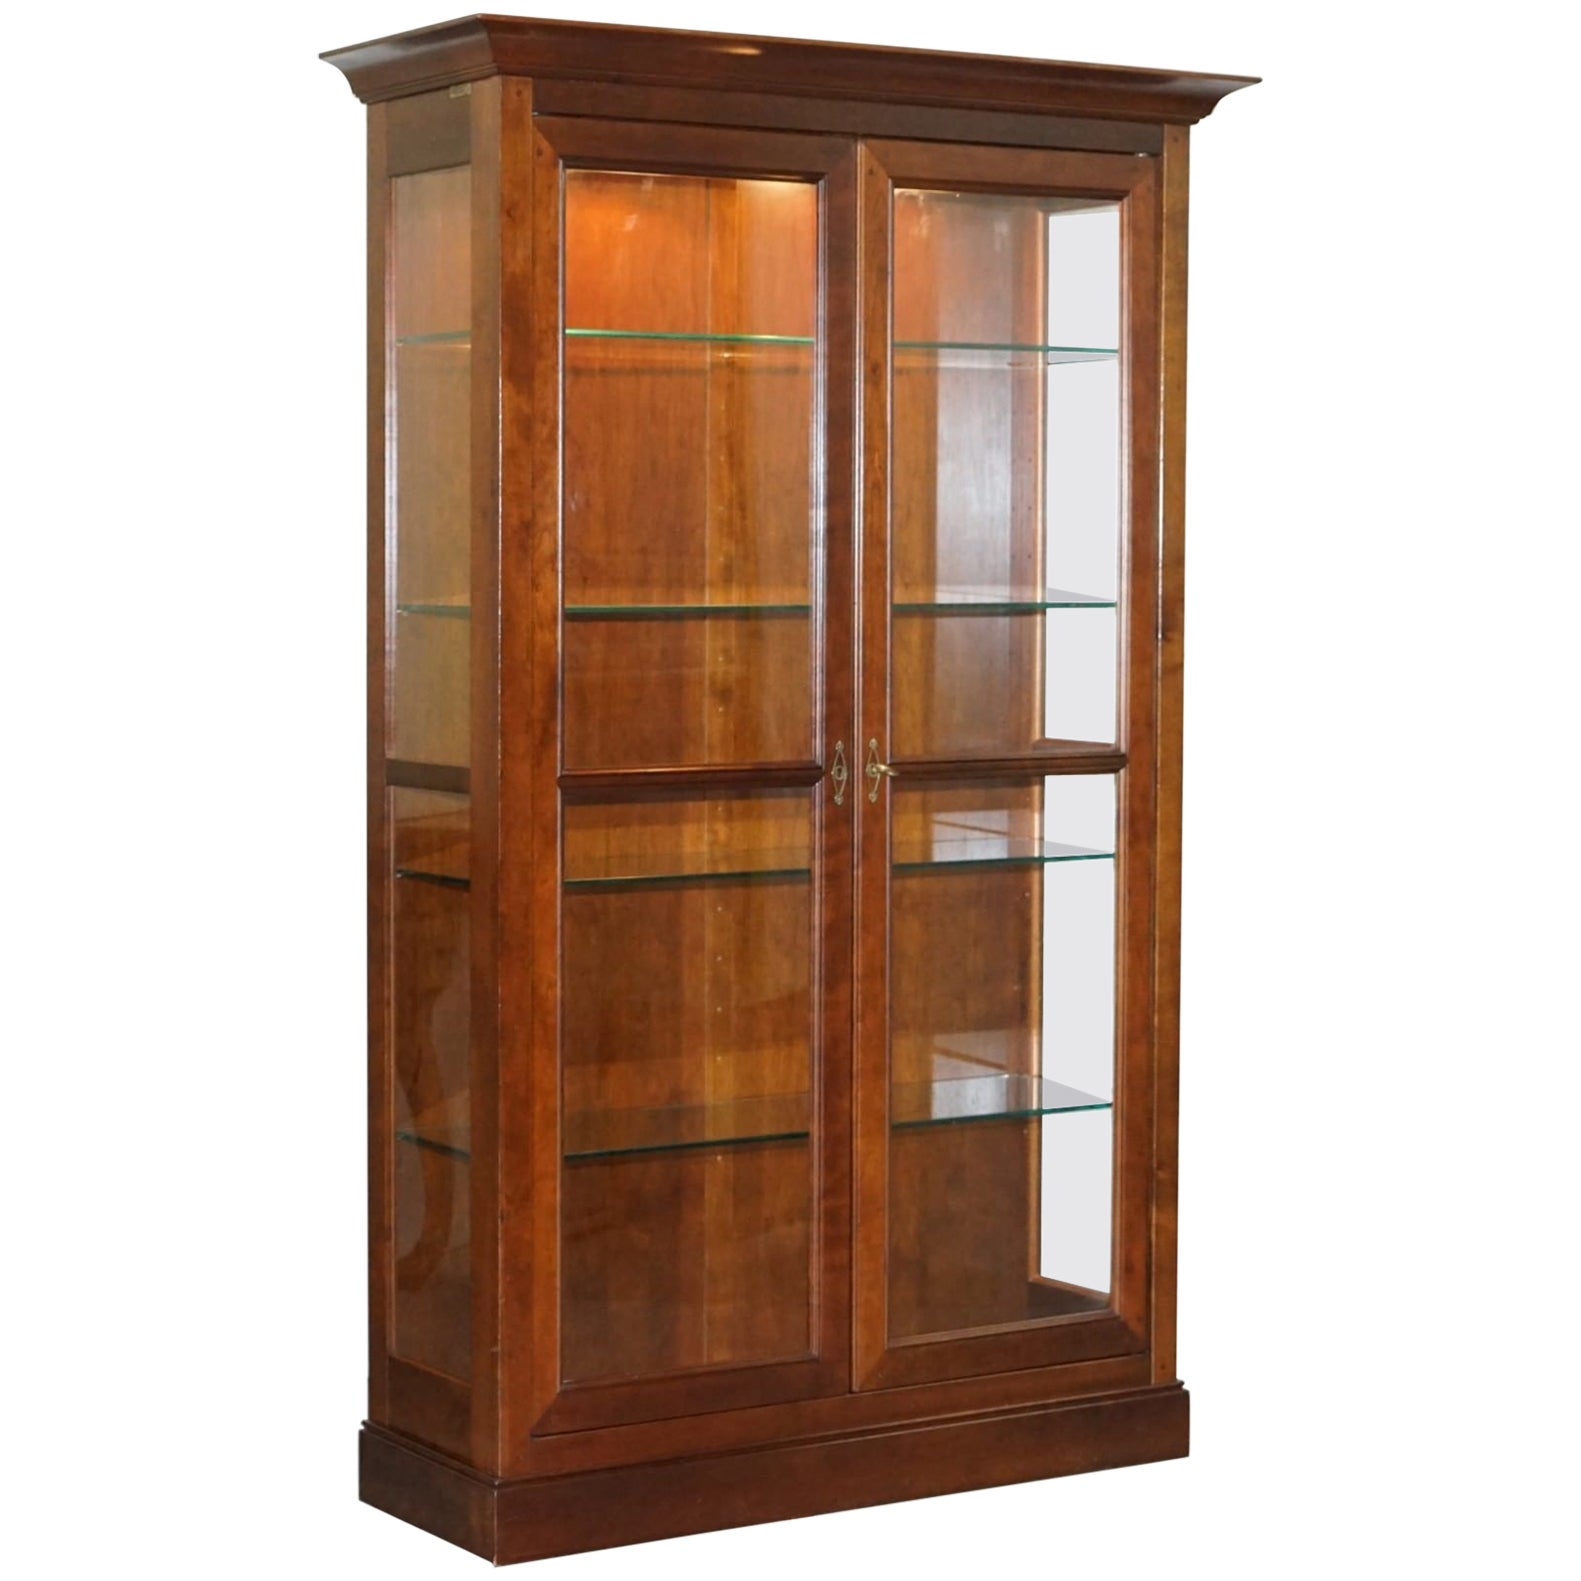 Meubles Grange France Stunning Grange Solid Cherry Wood Glass Display Cabinet With Lights Bookcase